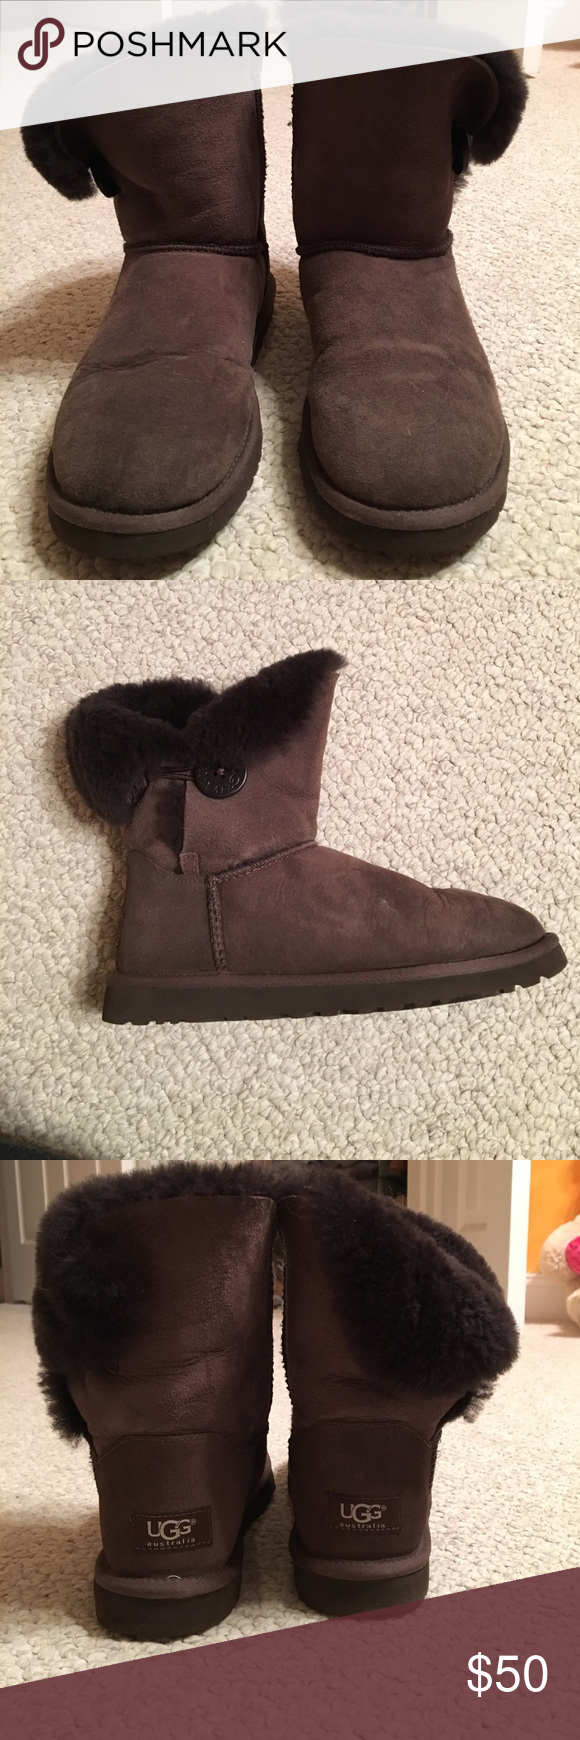 Ugg Australia short button boots Chocolate colored Ugg boots with a button on the side. No water damage and minimal wear and tear to the inside sole. UGG Shoes Winter & Rain Boots